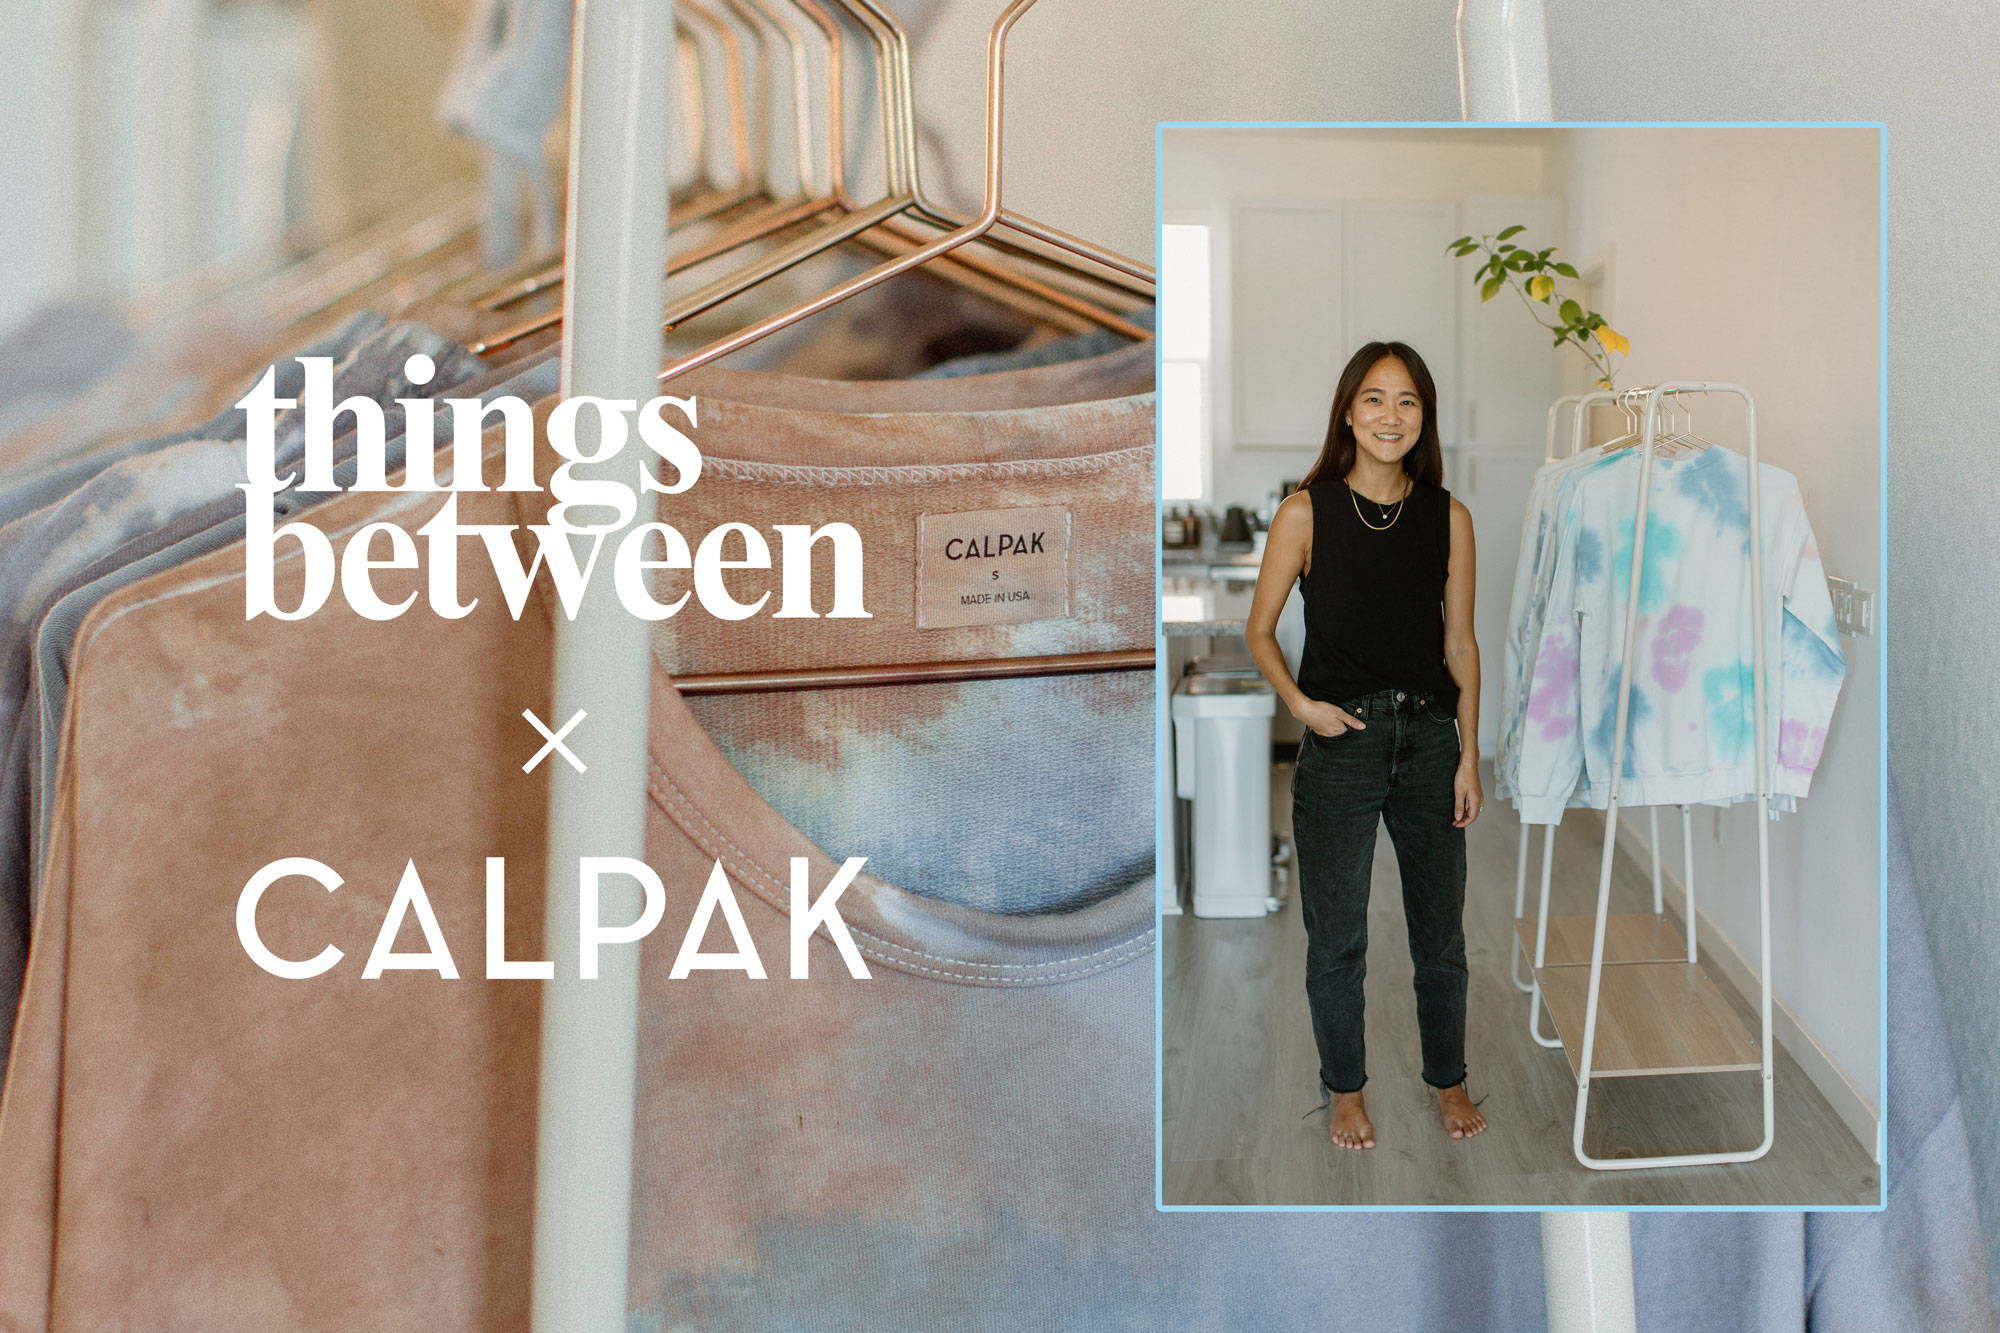 Founder of Things Between, Jessica Kim, posing with her pieces in her tie-dyeing studio.